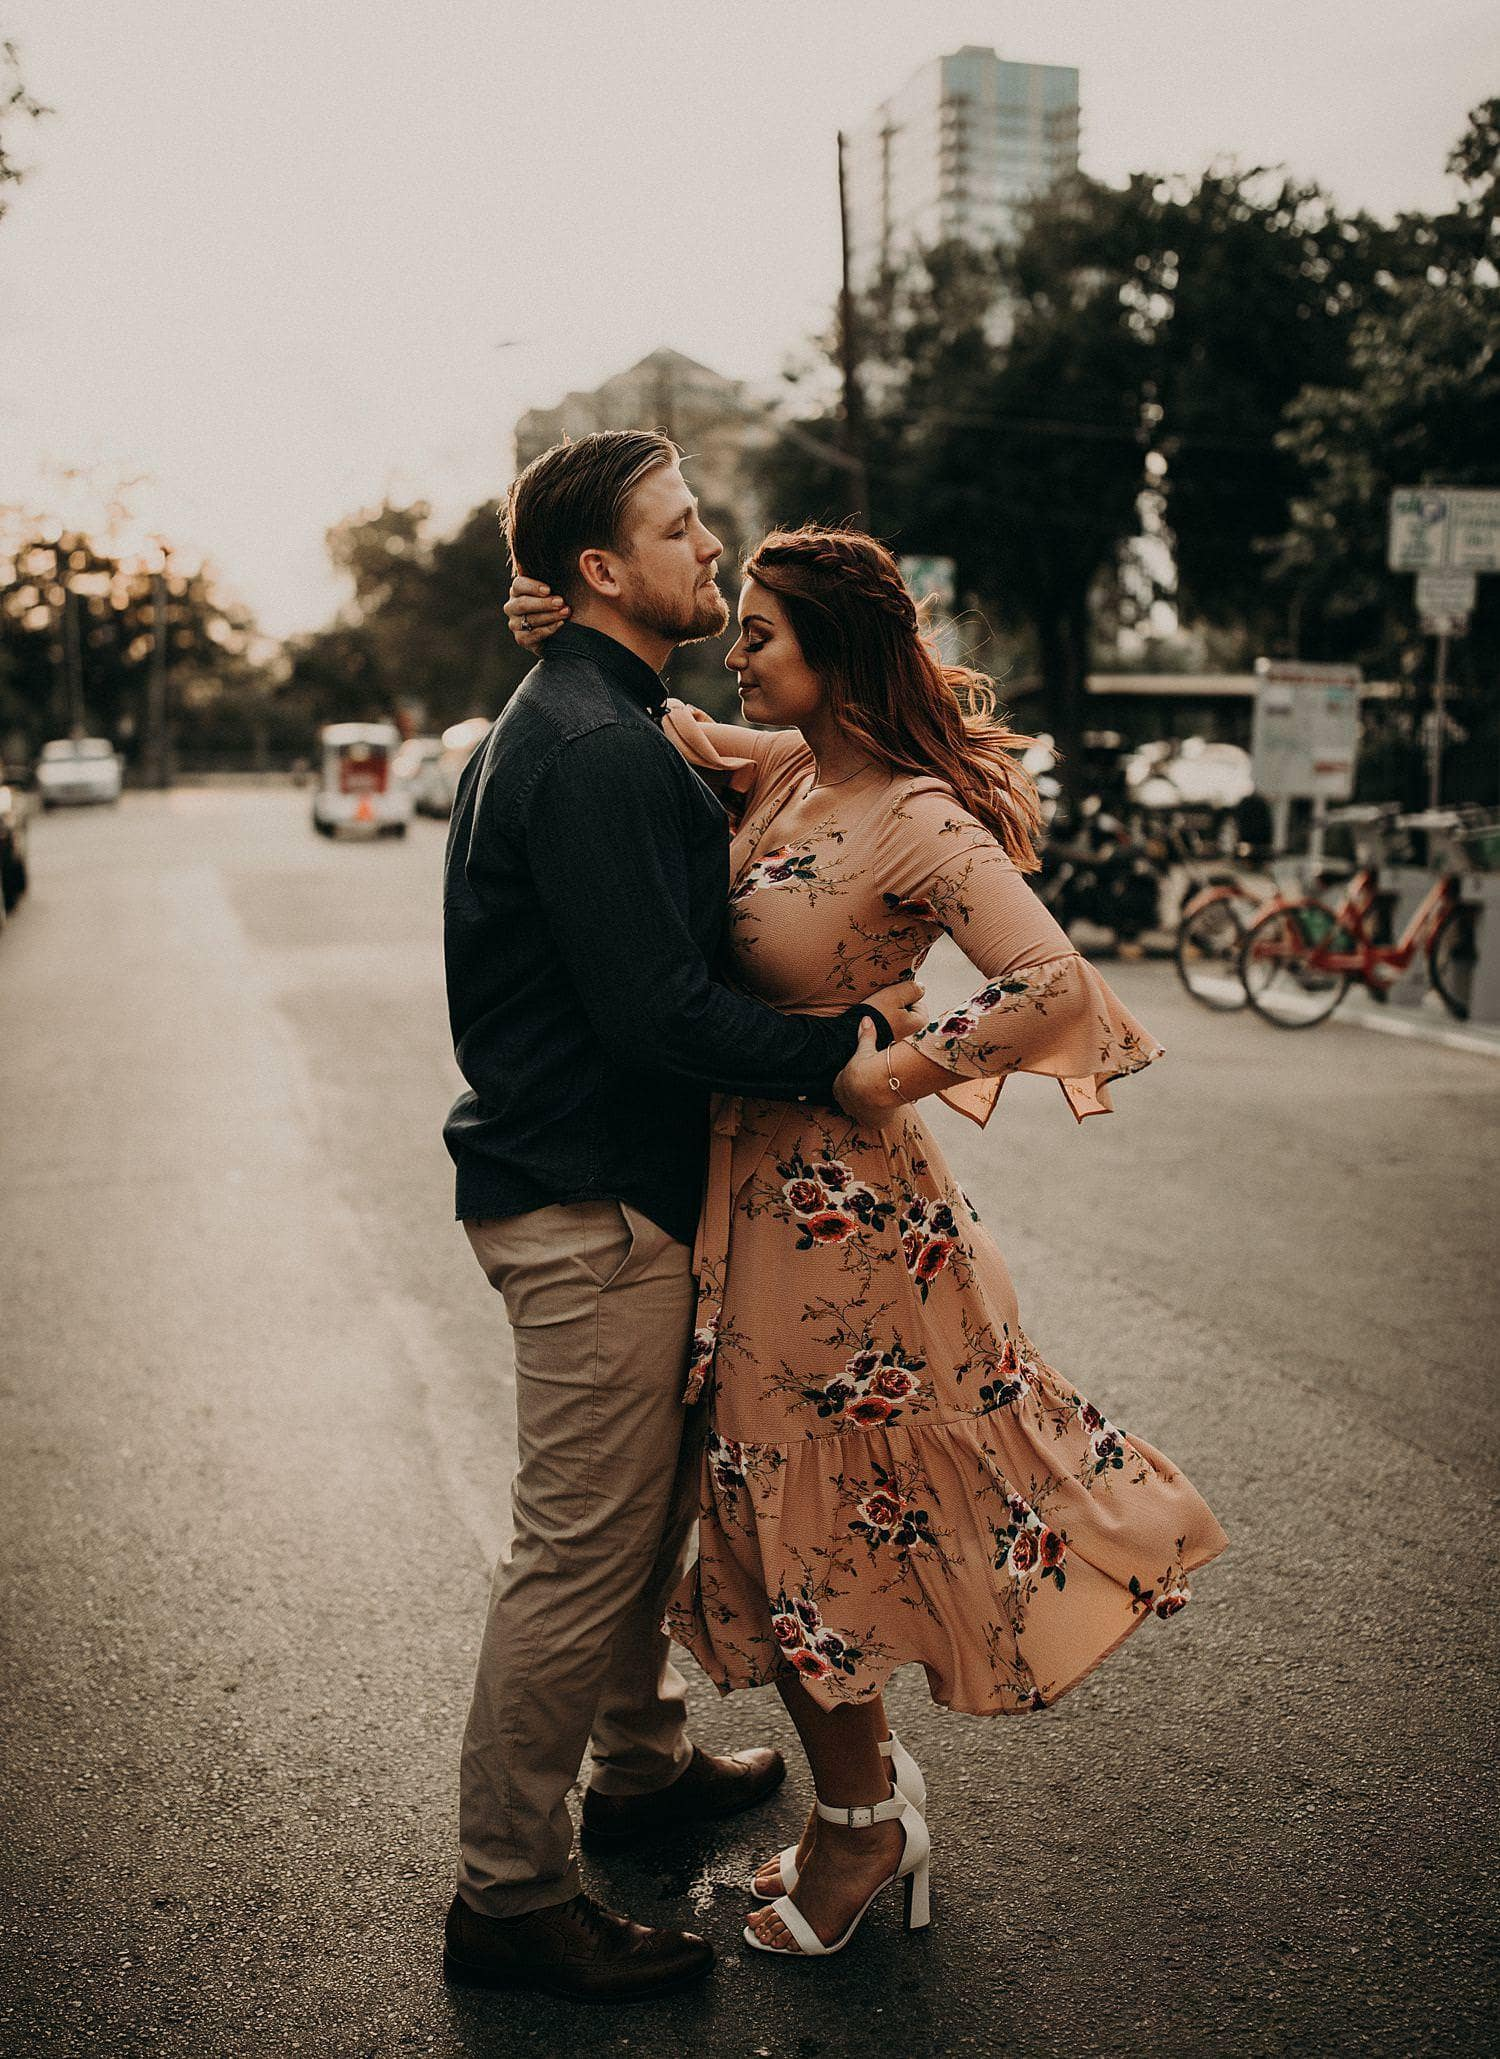 Bride to be and groom to be embrace with their eyes closed in the middle of the street during the golden hour in downtown Austin, Texas. Photograph by Austin, Texas wedding photographer Nikk Nguyen.